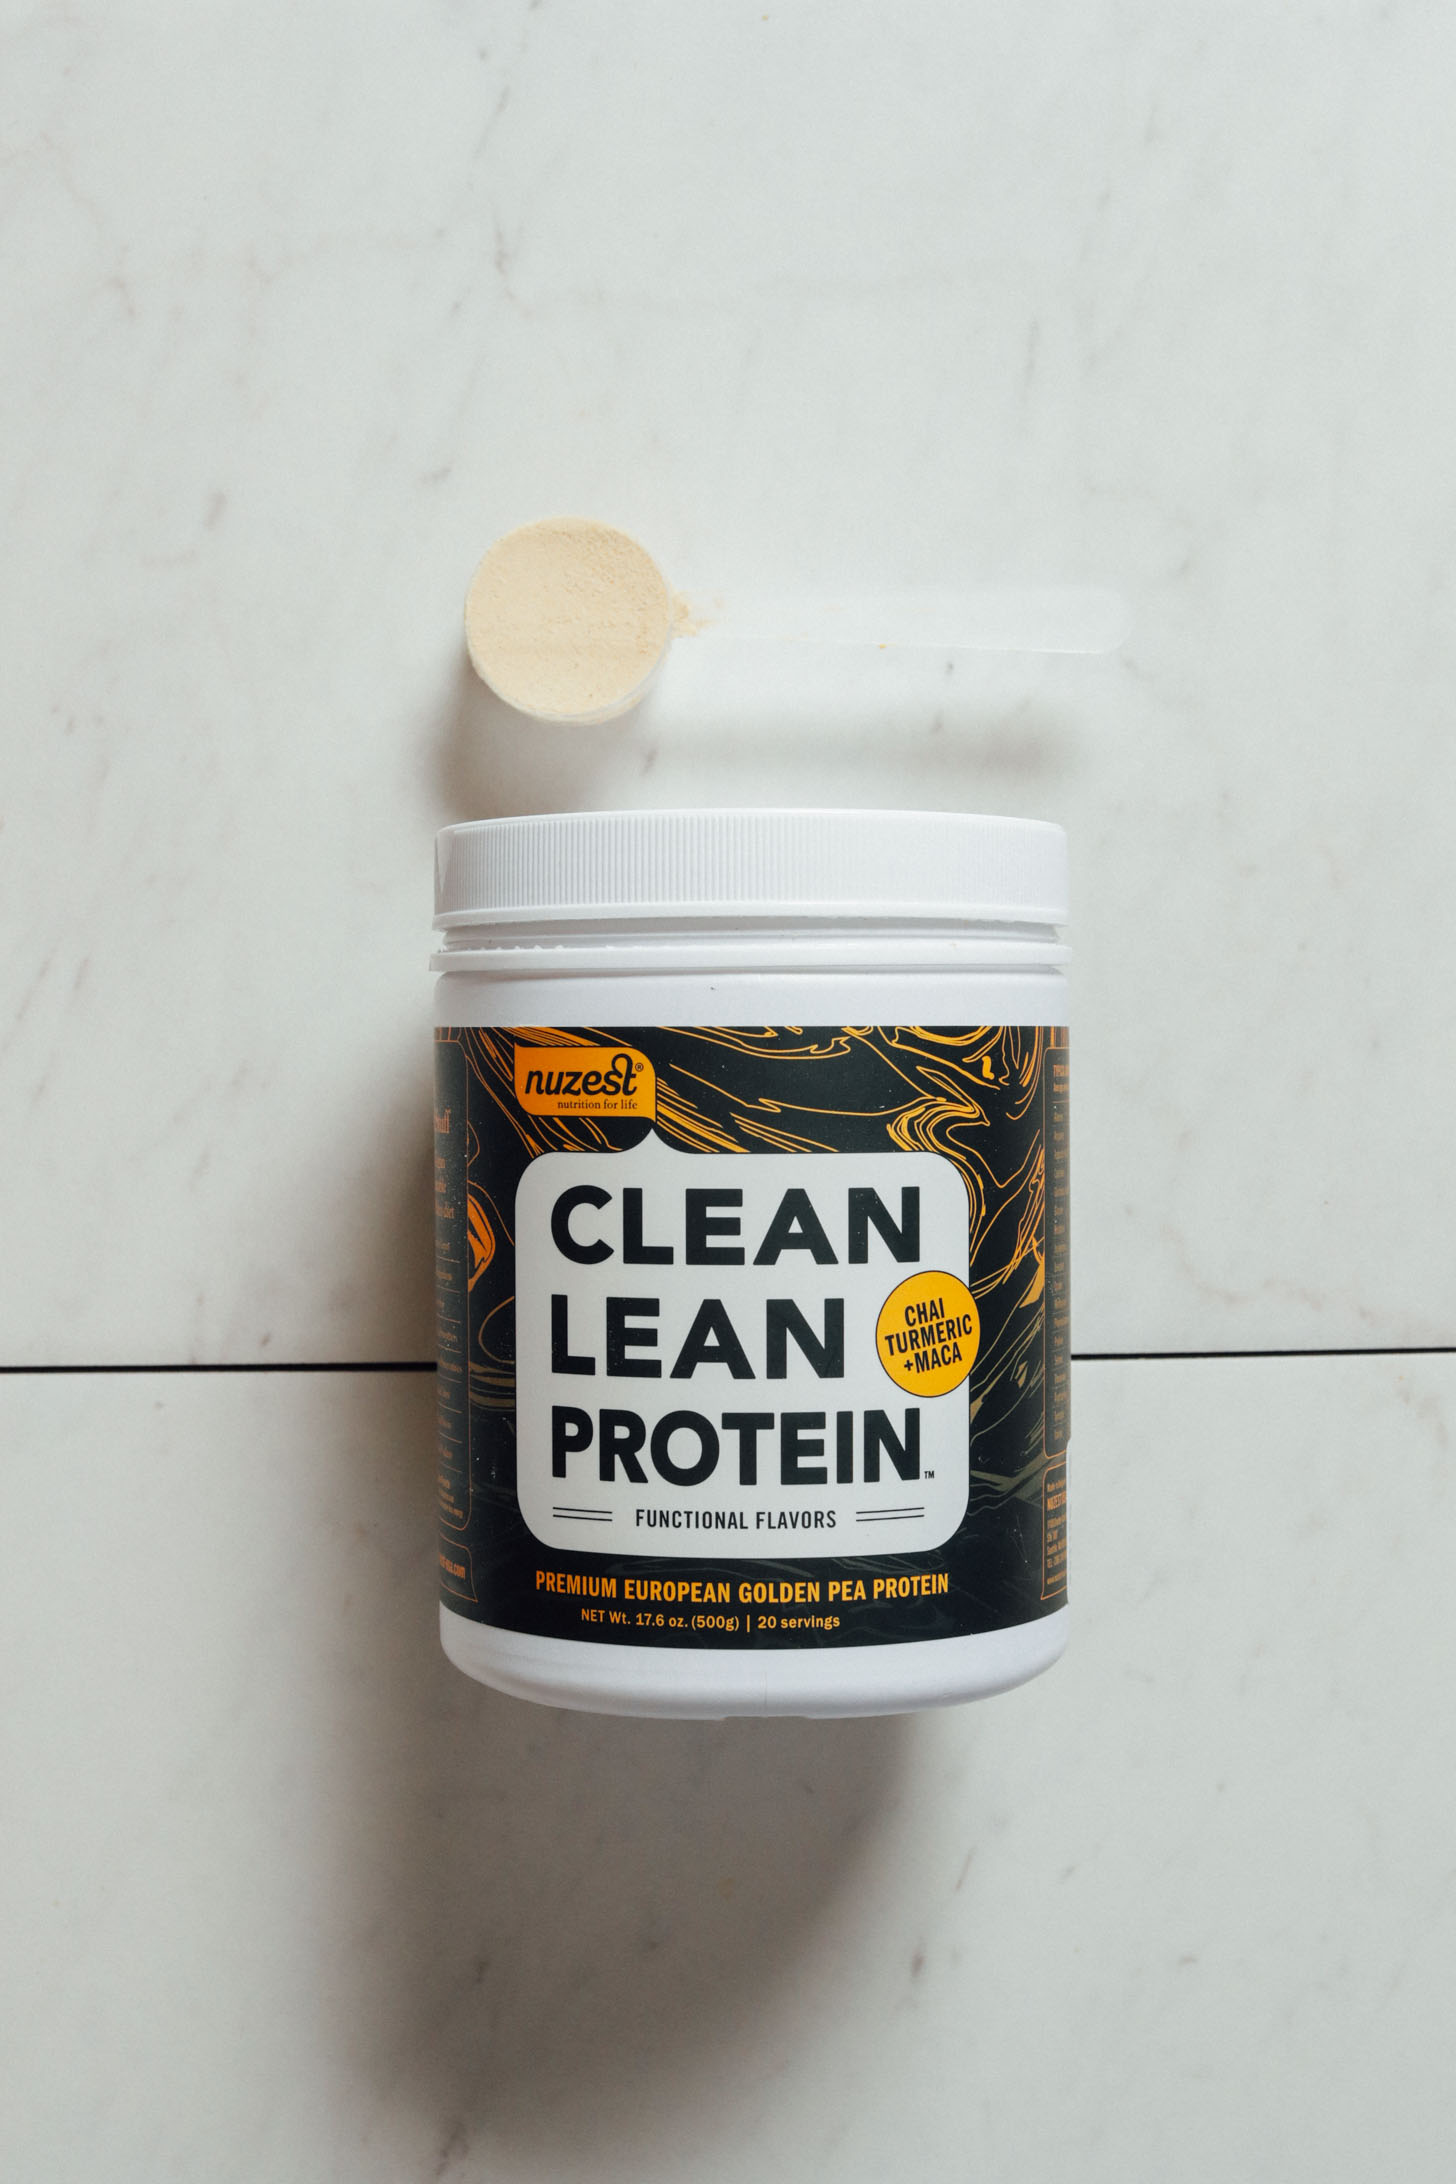 Tub and scoop of Nuzest Clean Lean Chai Turmeric Maca protein powder